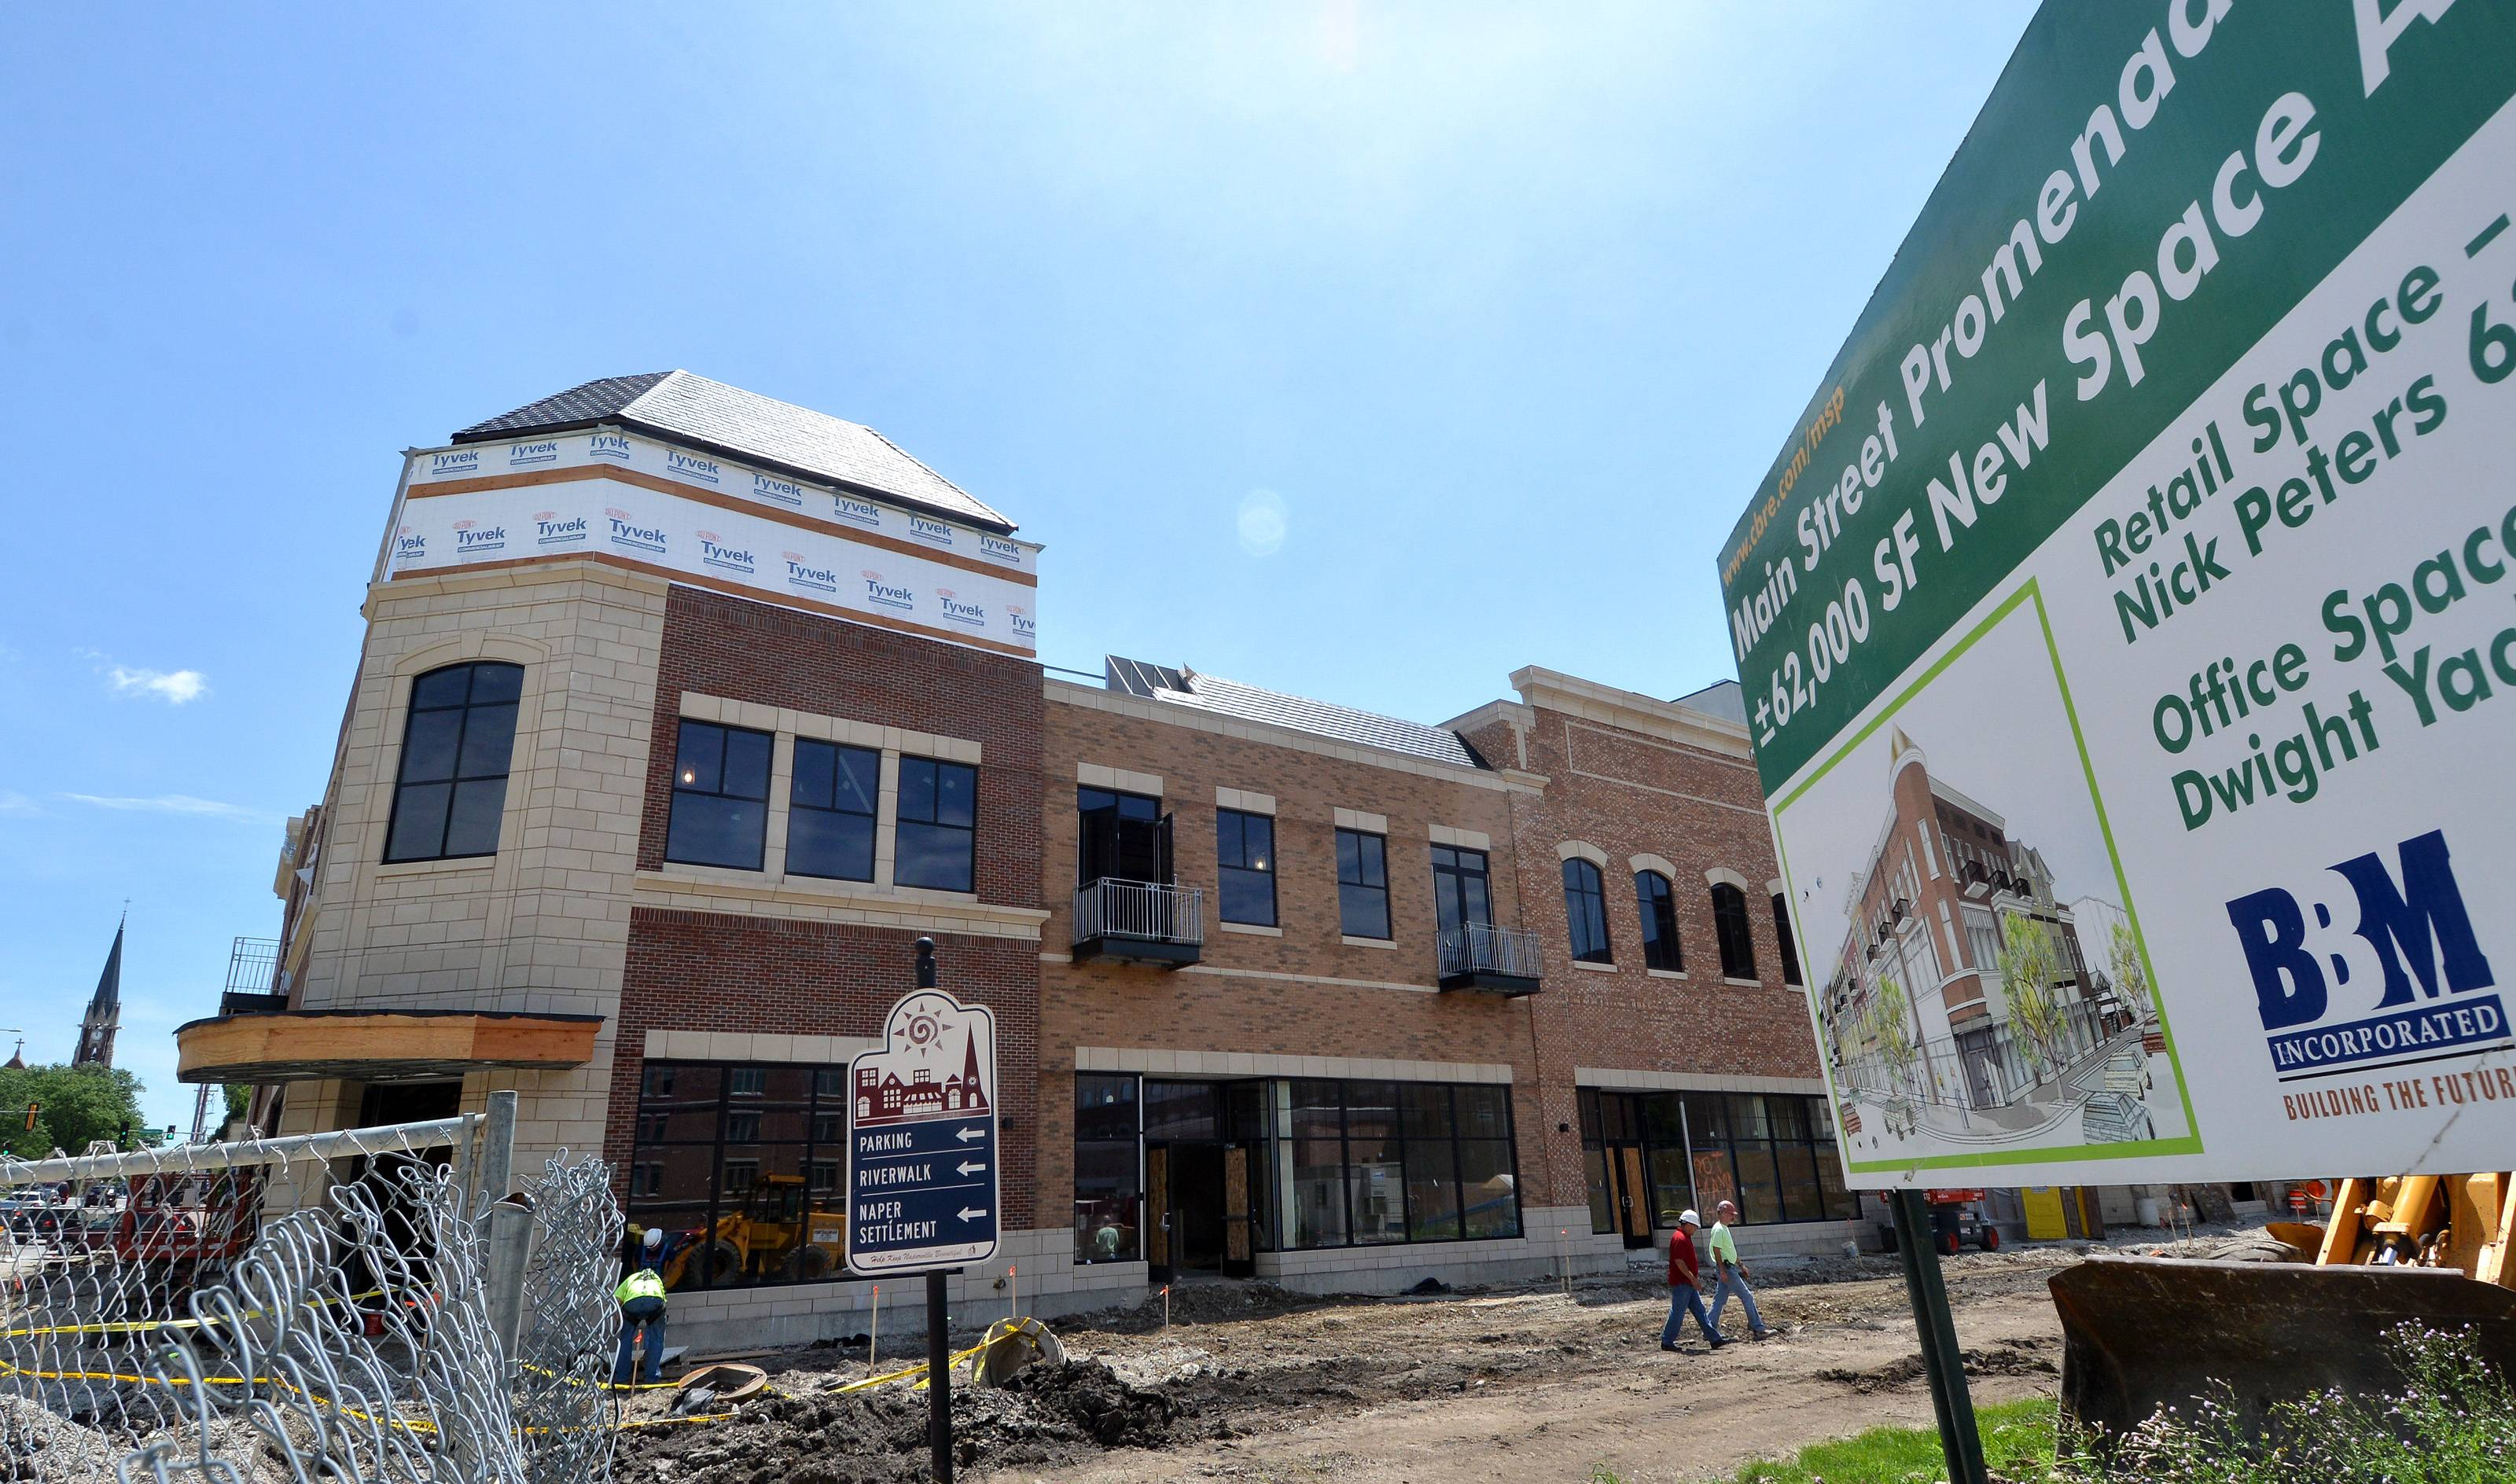 New shops and offices at Main Street Promenade East in Naperville are scheduled to begin opening as soon as August with the launch of clothing store Ever Eve. J. Crew and Anthropologie are among businesses coming to the $30 million, 51,000-square-foot development.